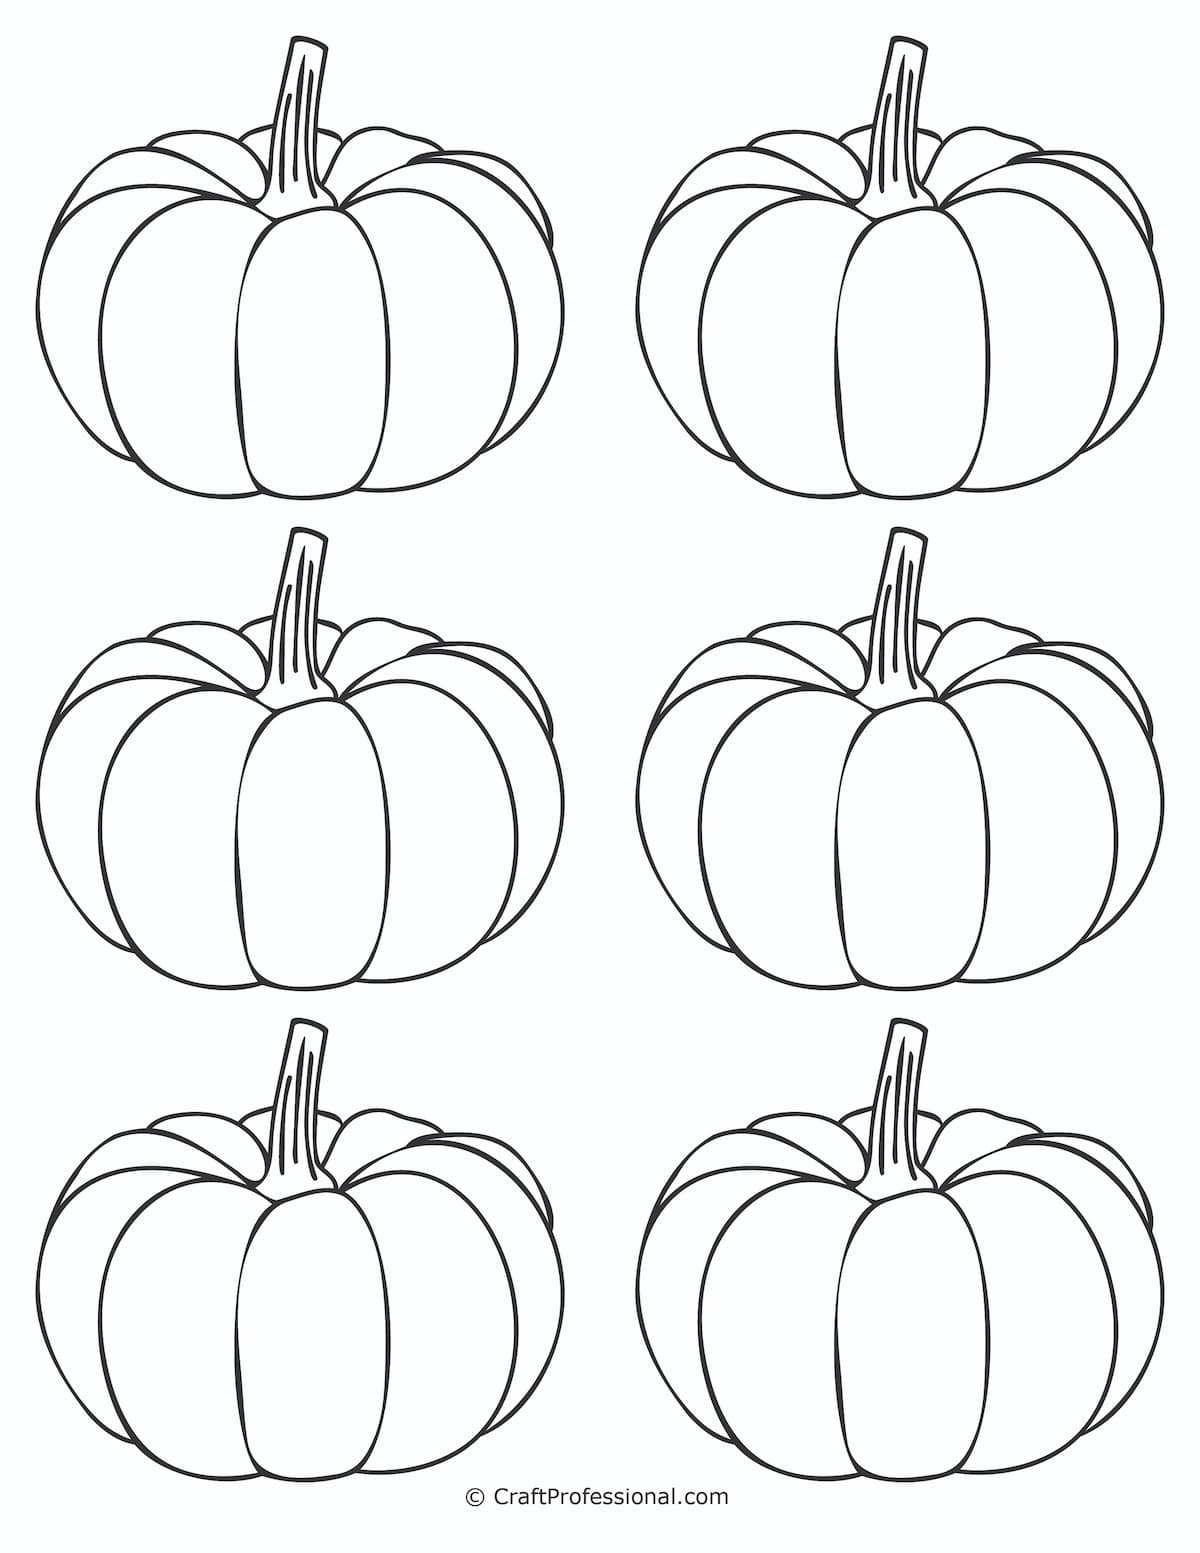 pumpkin coloring for adults kids pumkin small covered cart create color by number coloring pages Coloring Page Pumkin